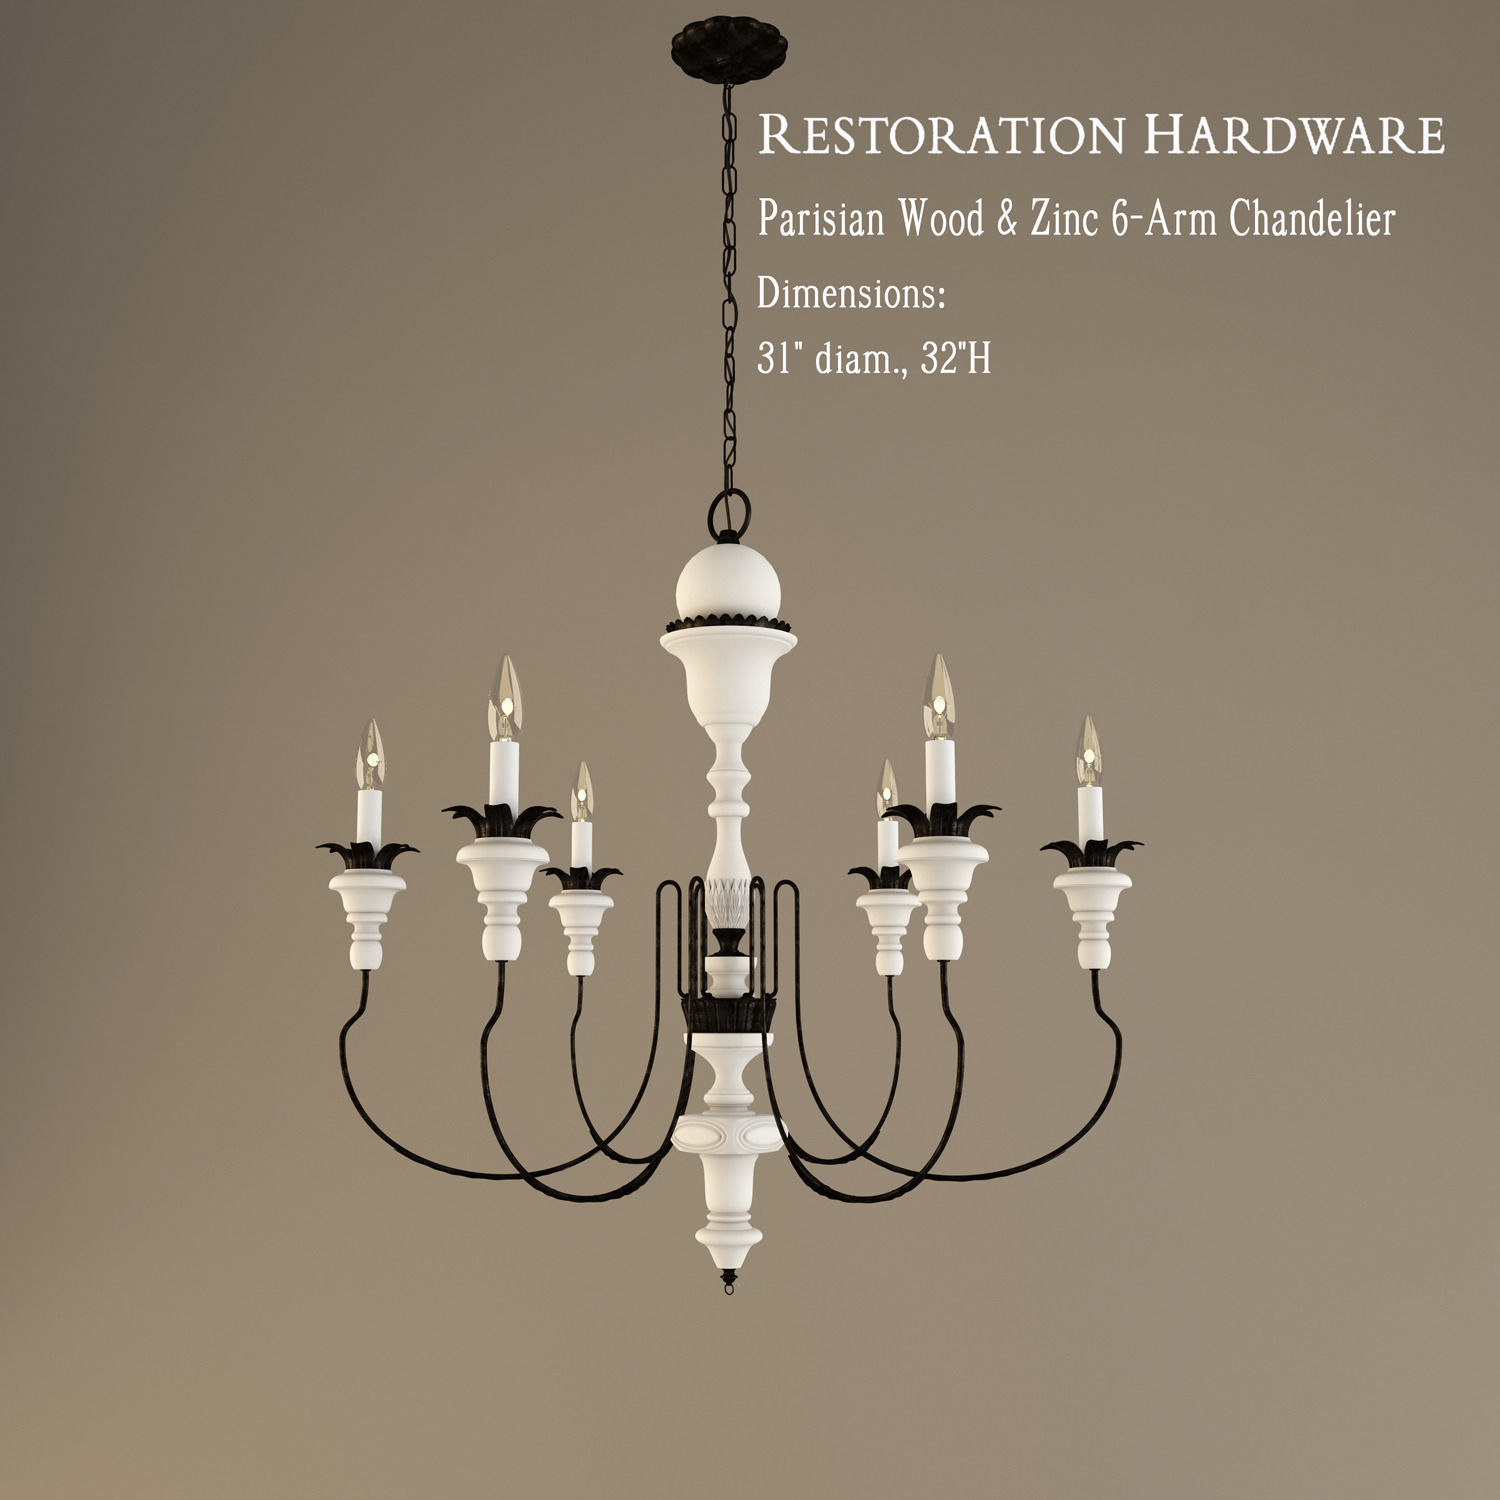 Restoration hardware parisian wood and zinc 6 arm chandelier 3d restoration hardware parisian wood and zinc 6 arm chandelier 3d model 3ds 1 aloadofball